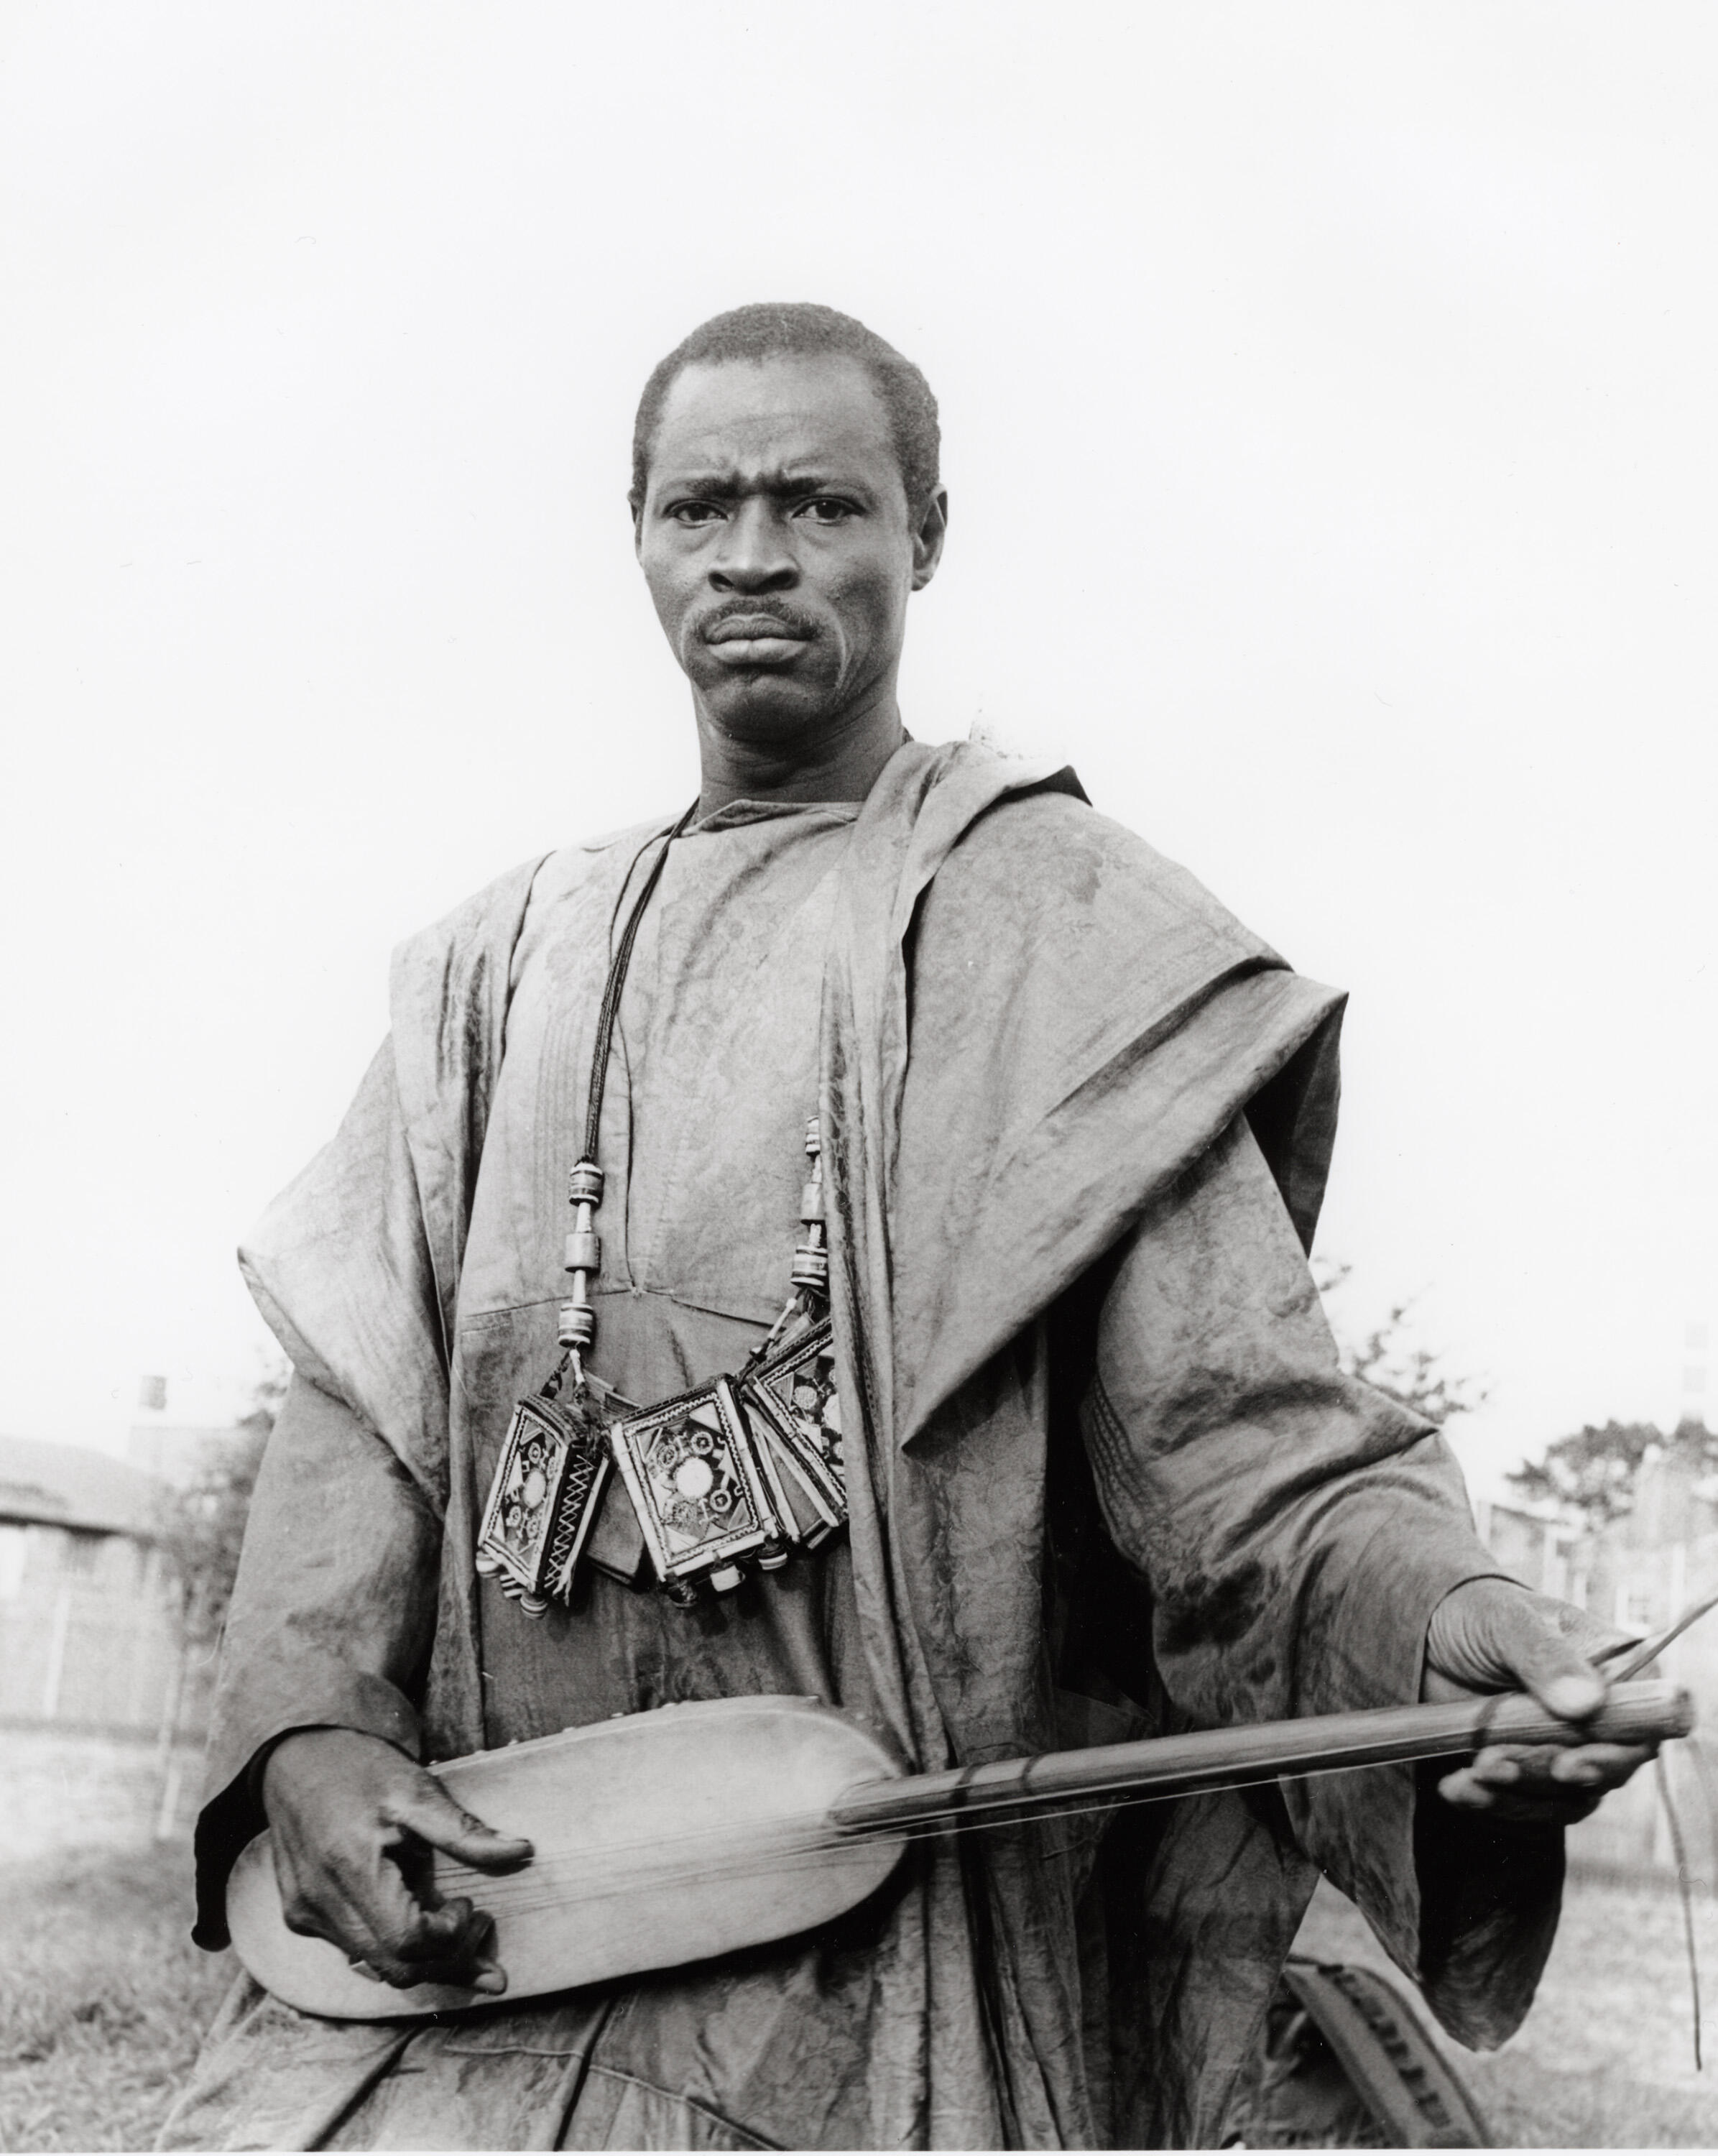 Ali Farka Touré with the ngoni. Born near Timbuktu in the north of Mali, the master bluesman knew the value of his country's music.